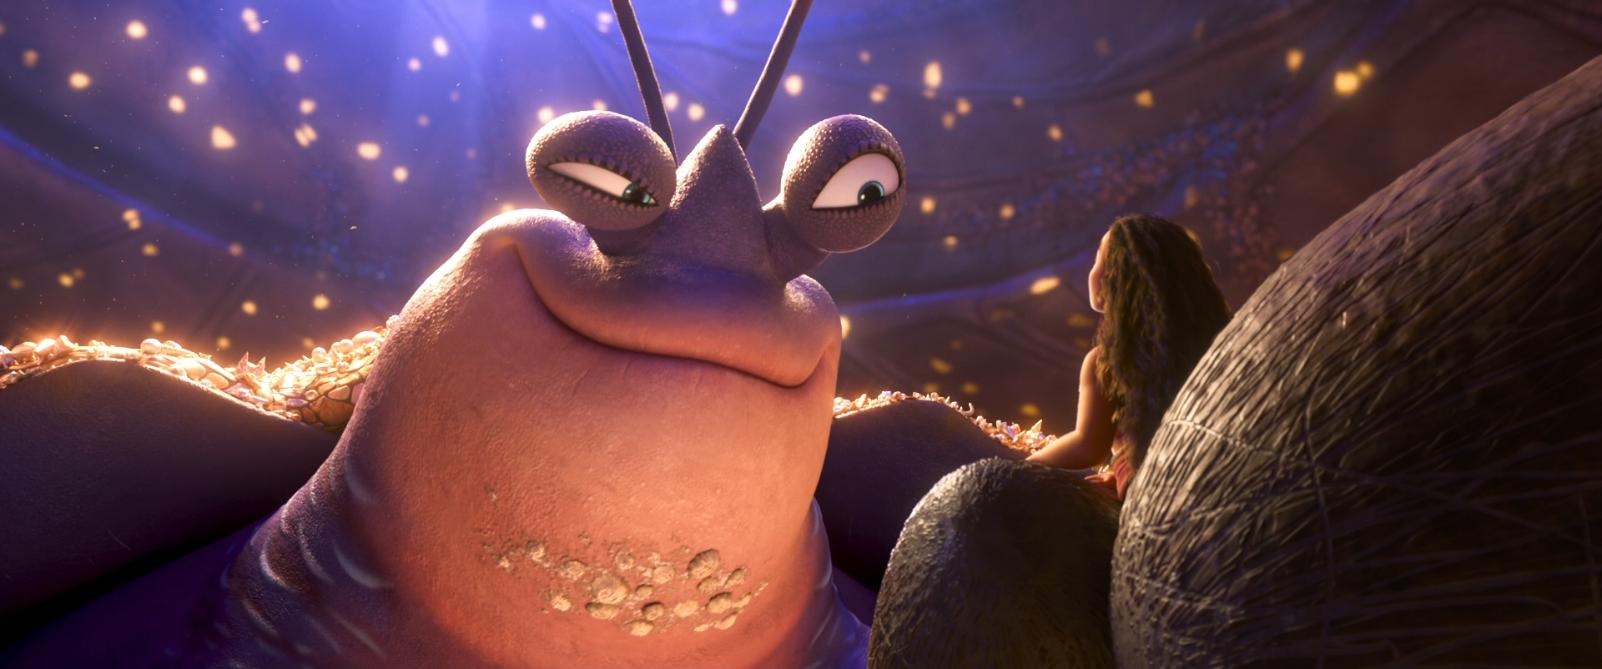 Jemaine Clement and Auli'i Cravalho in Moana (2016)